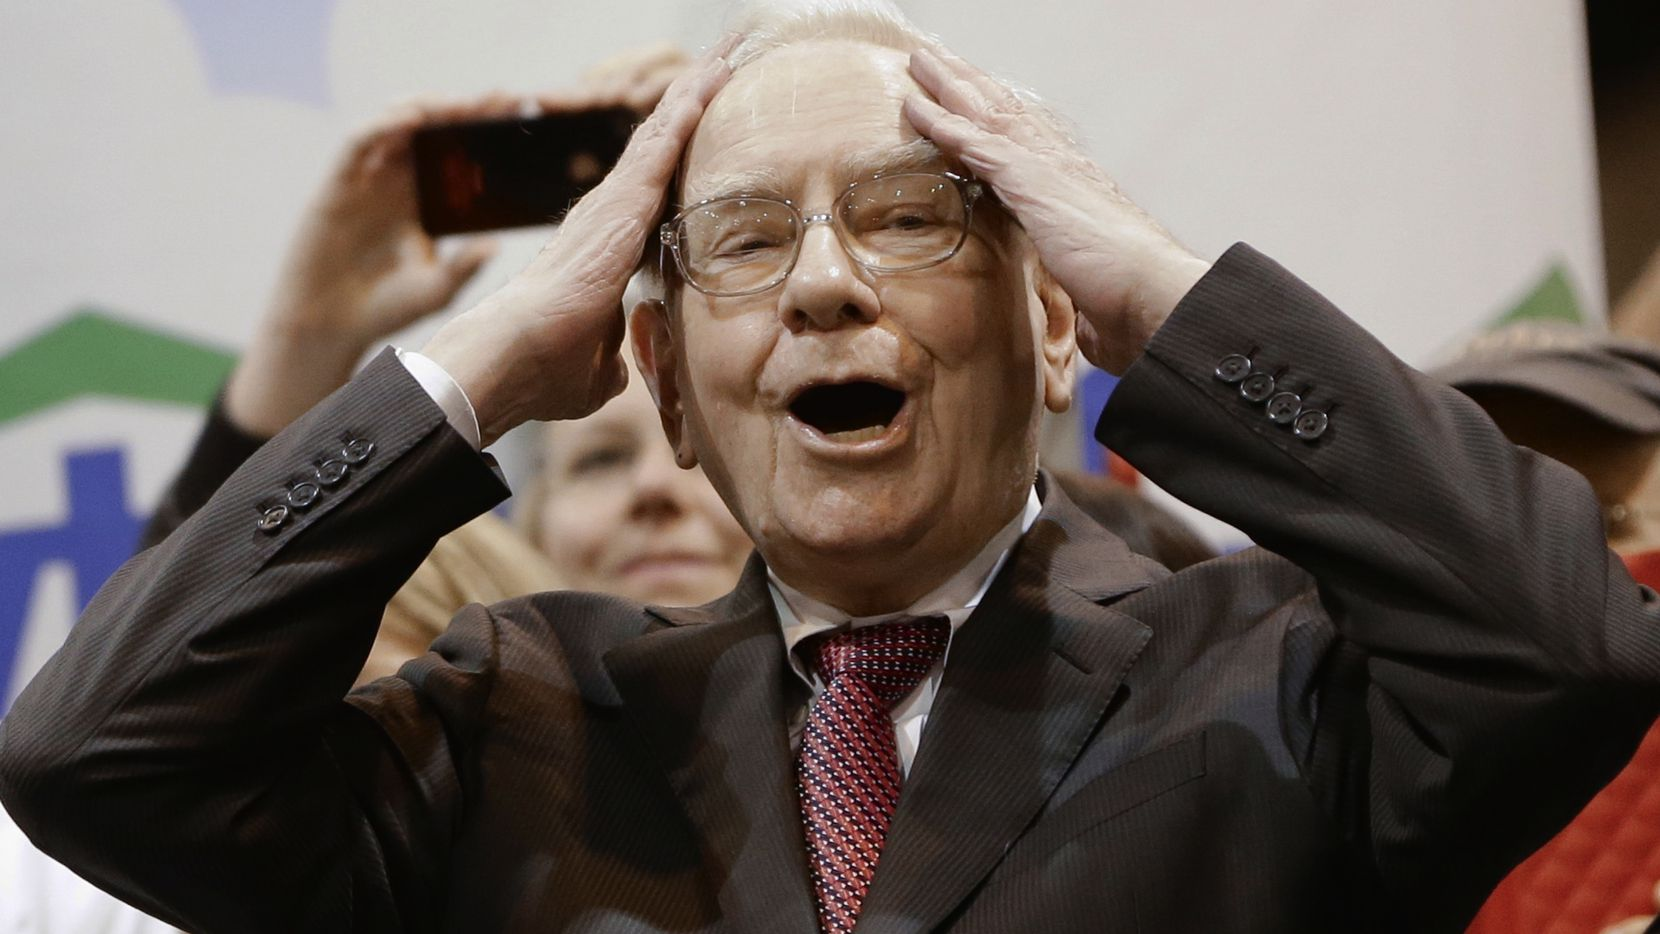 Berkshire Hathaway Chairman and CEO Warren Buffett reacted to a throw during the newspaper toss competition. Shareholders were challenged to throw a copy of the Omaha World-Herald farther than Buffett.